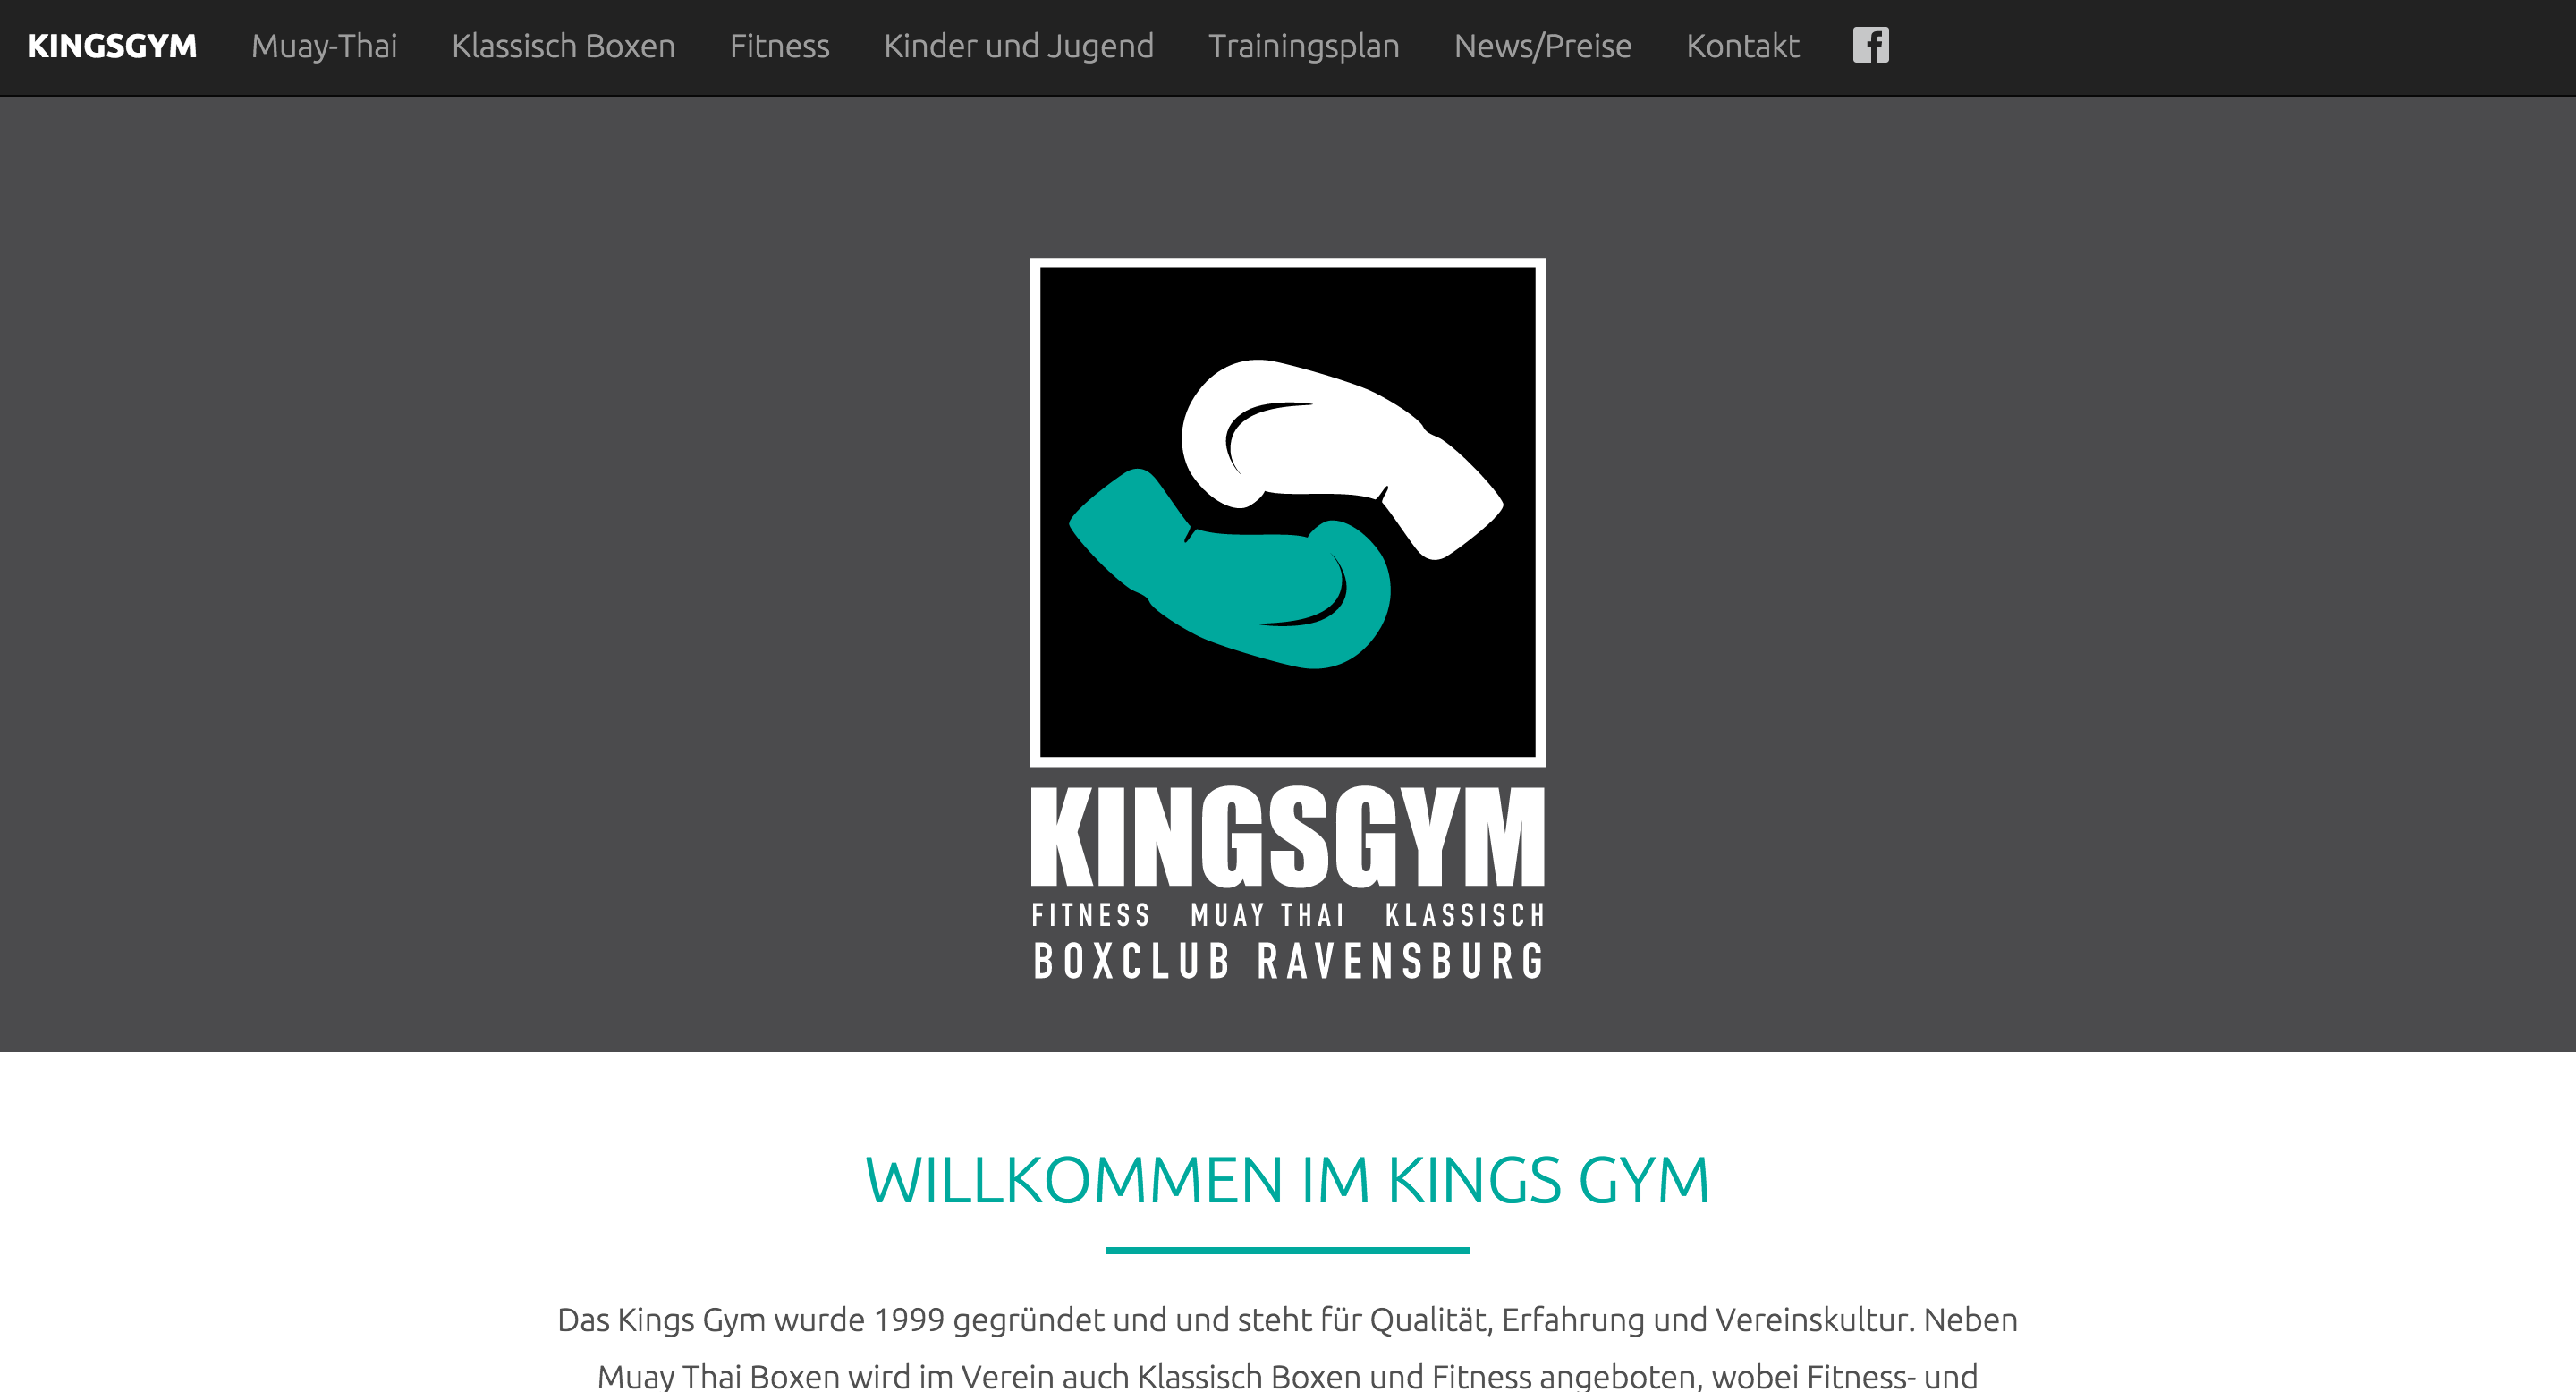 Kings Gym Web